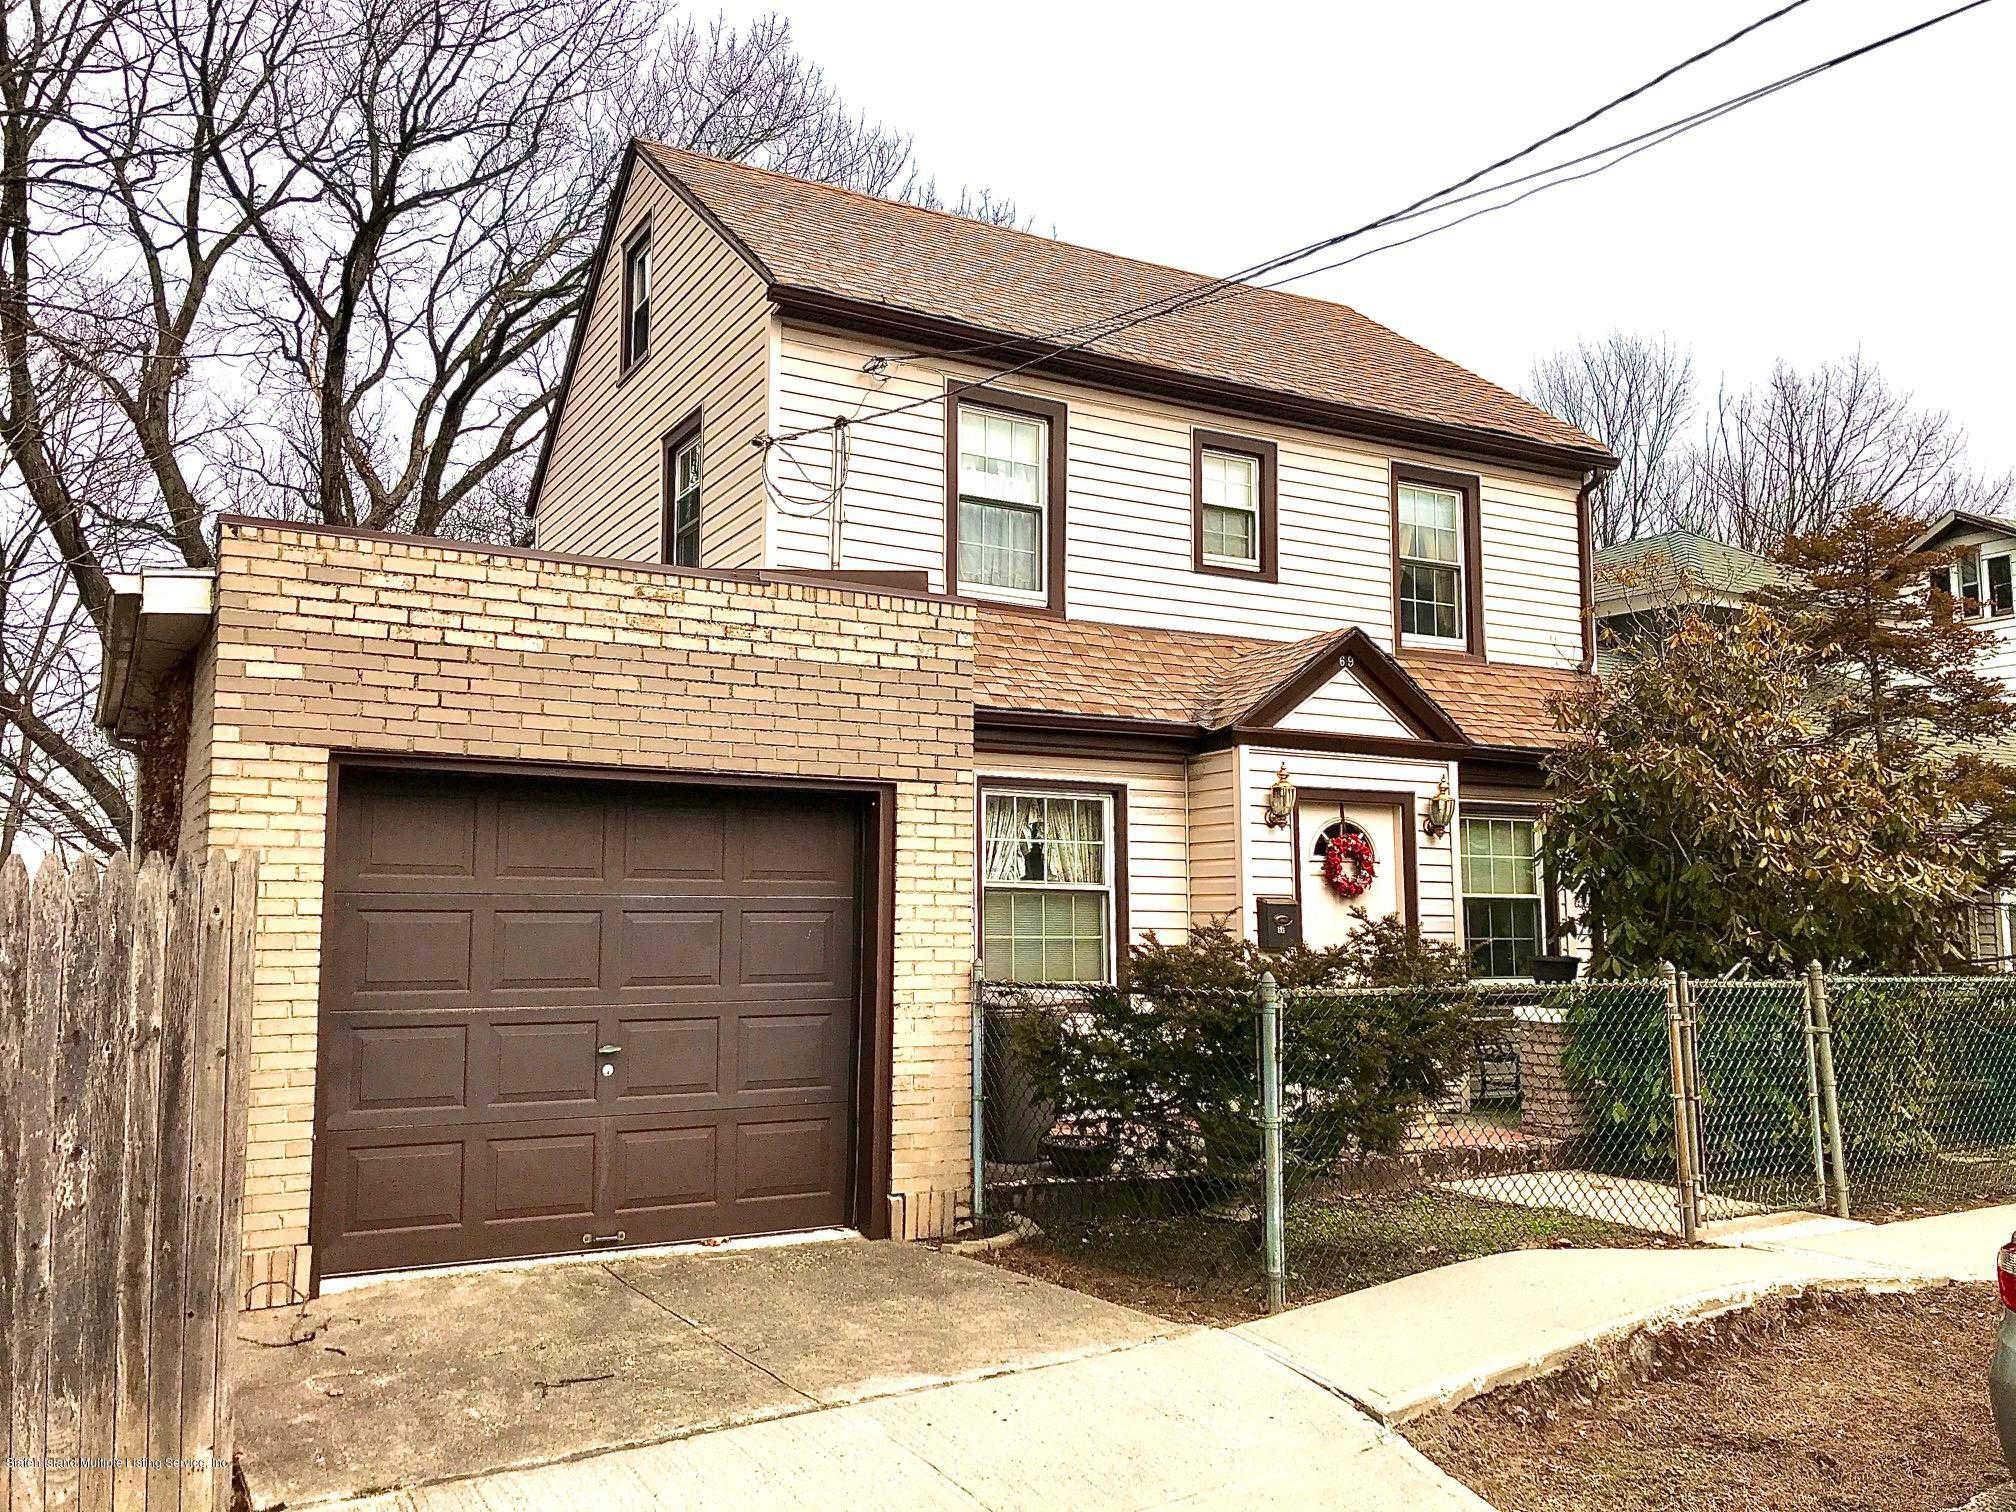 69 Portland Place, Staten Island, NY 10301 now has a new price of $499,000!